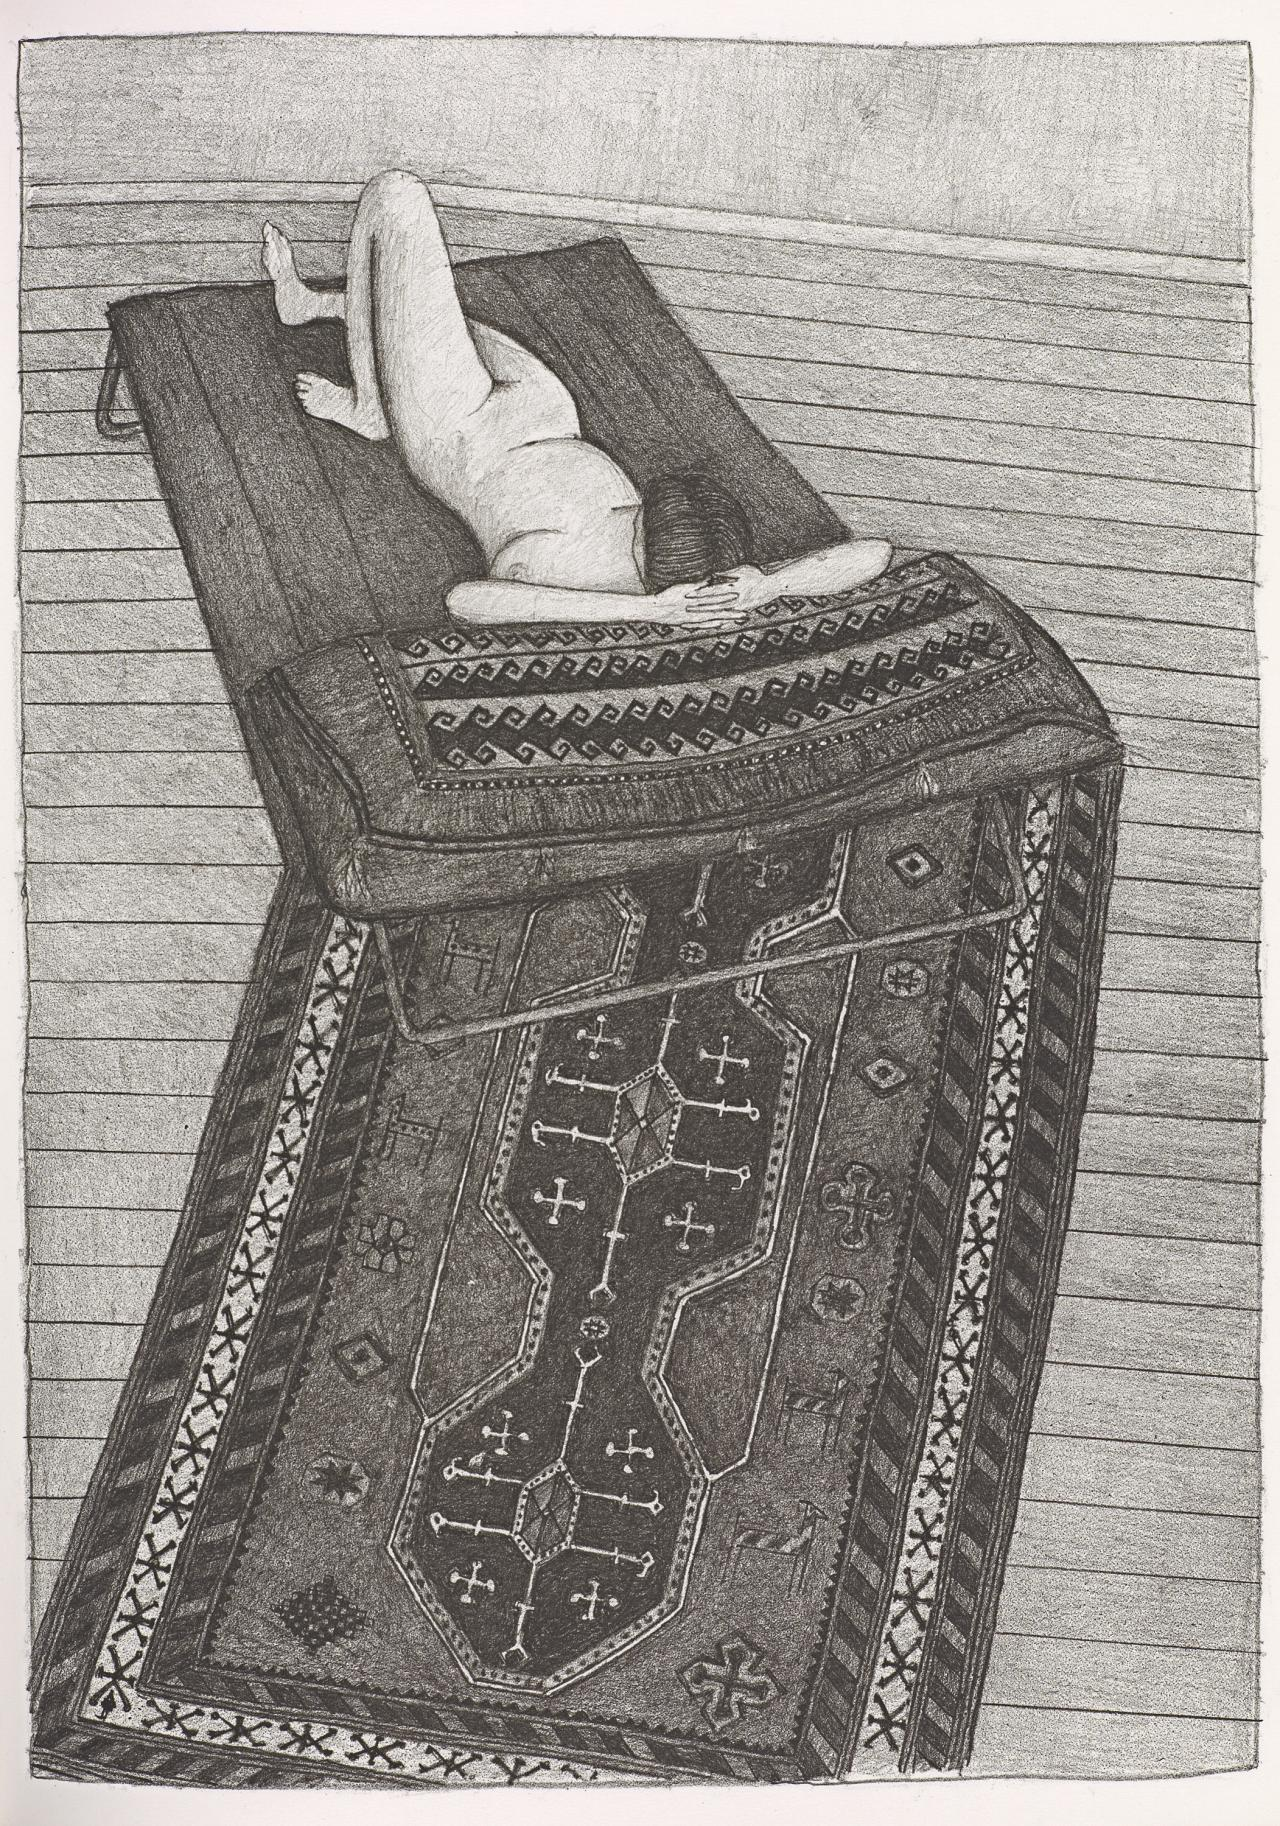 (Nude reclining on divan and cushion, seen from above, on patterned rug)